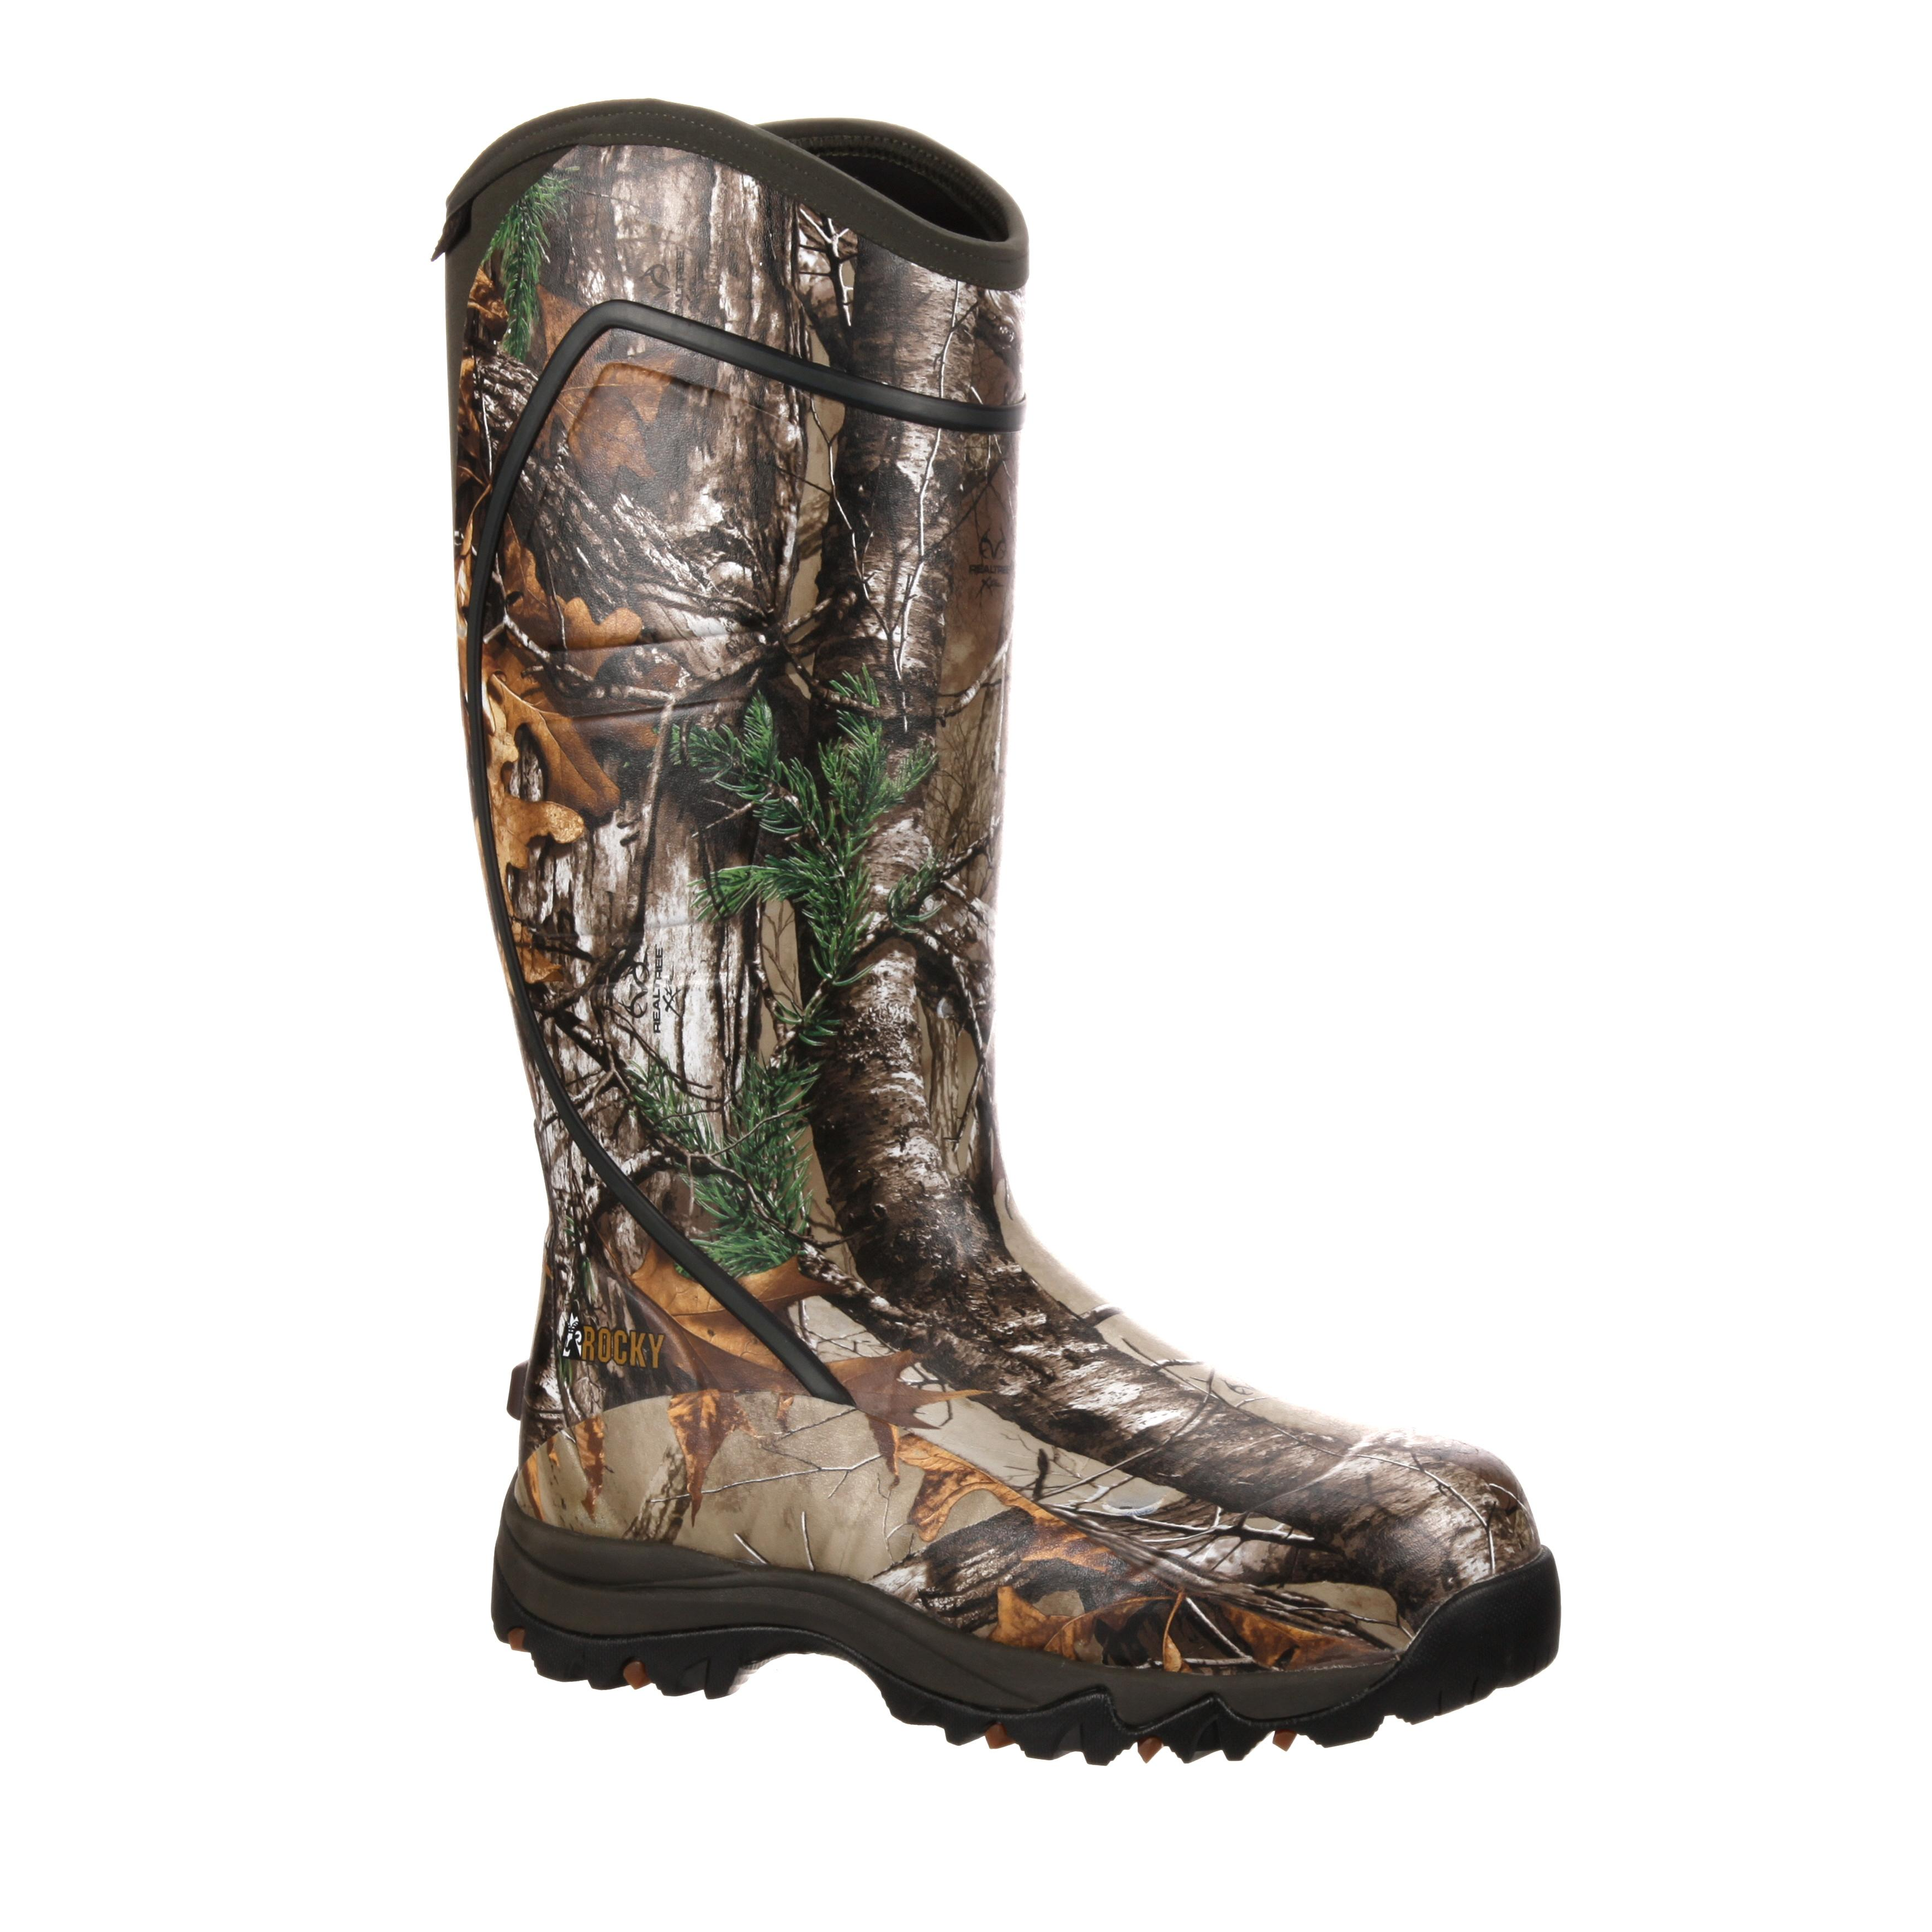 Rocky Hunting Boots Clearance - Best Interior Design 2017